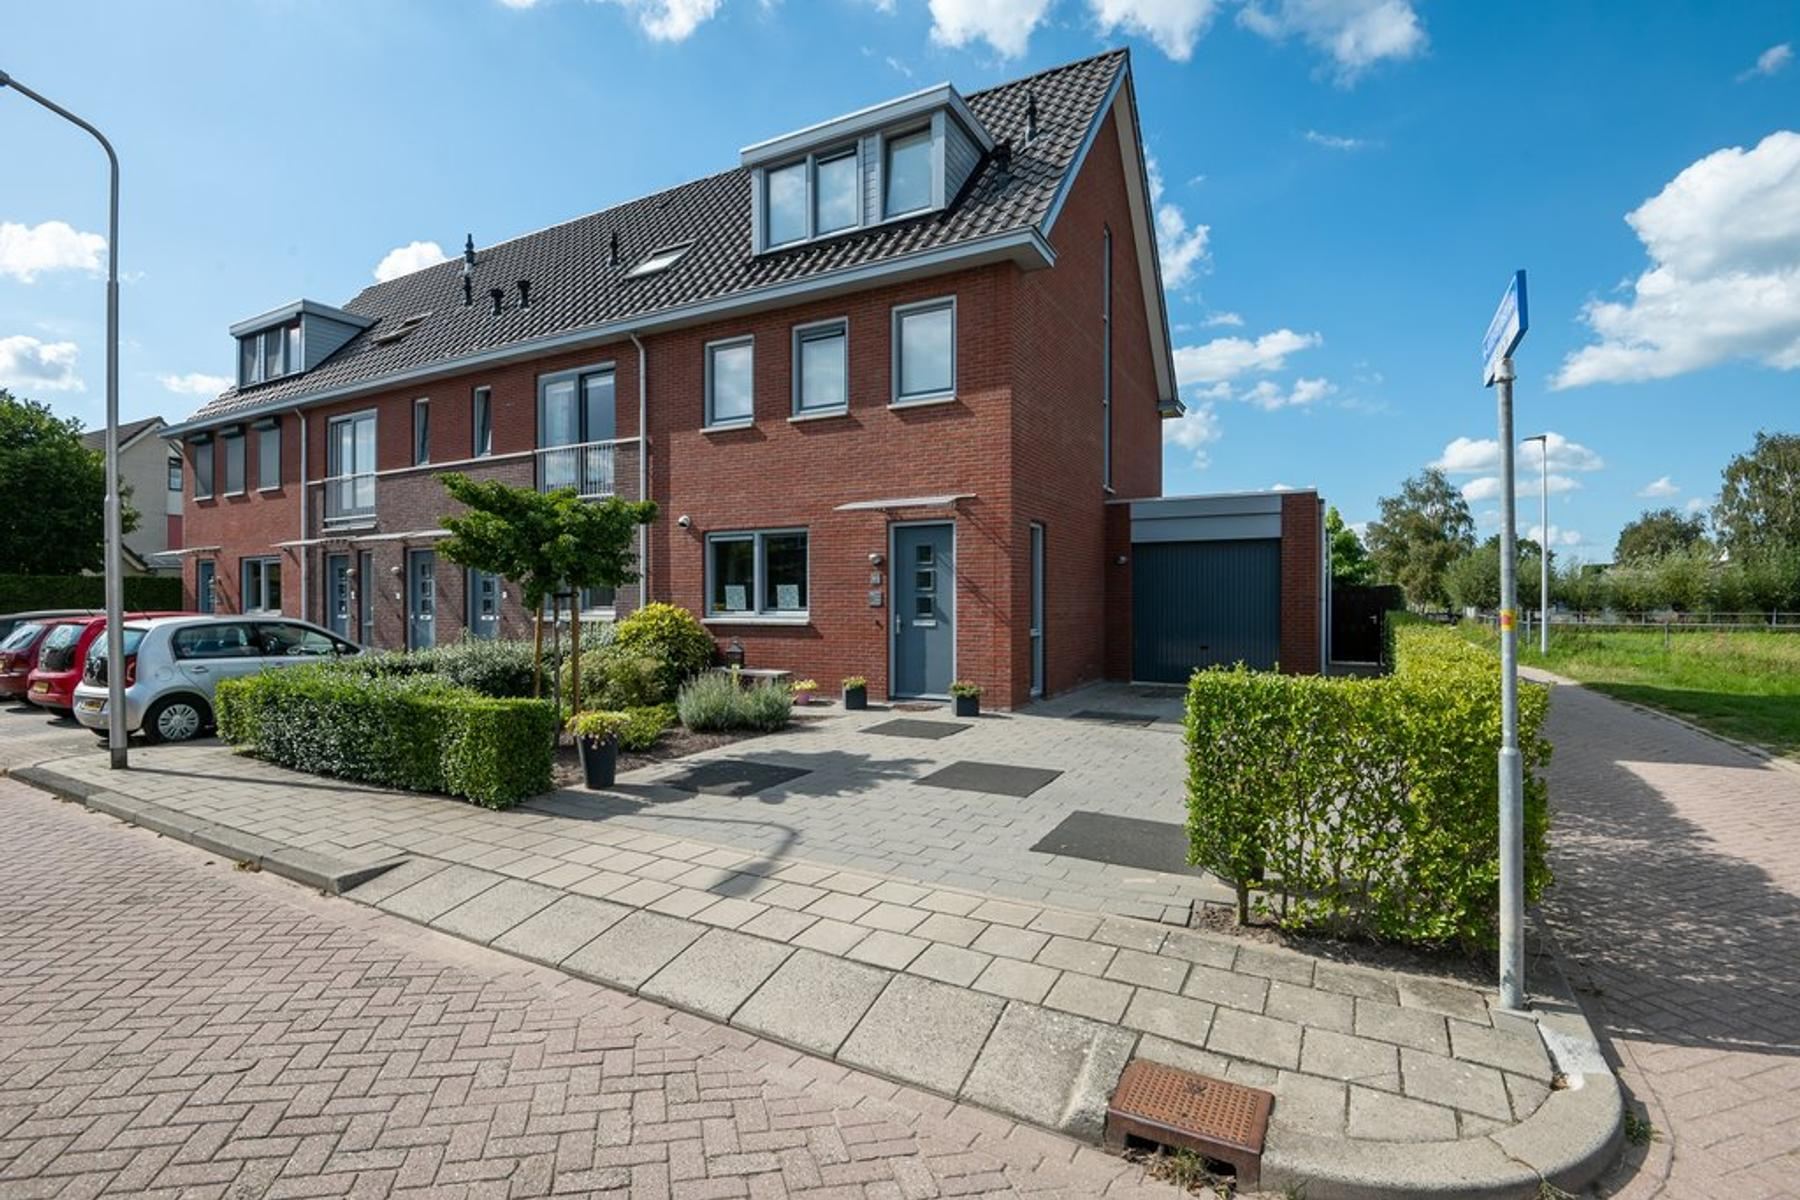 Killesteijnstraat 45 in Lexmond 4128 CW